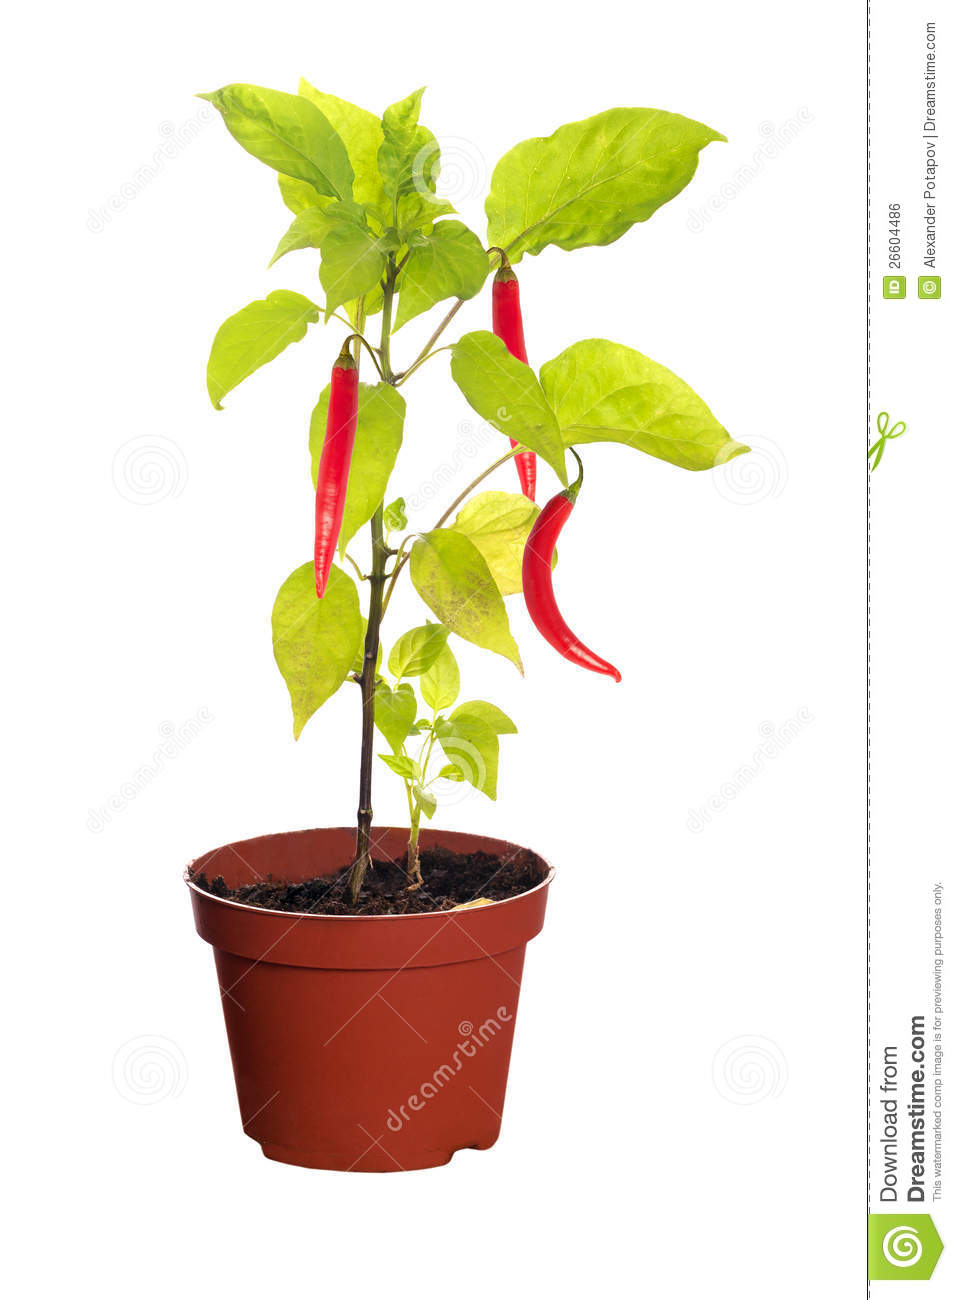 Chili Peppers On Plant In Pot Royalty Free Stock Image   Image